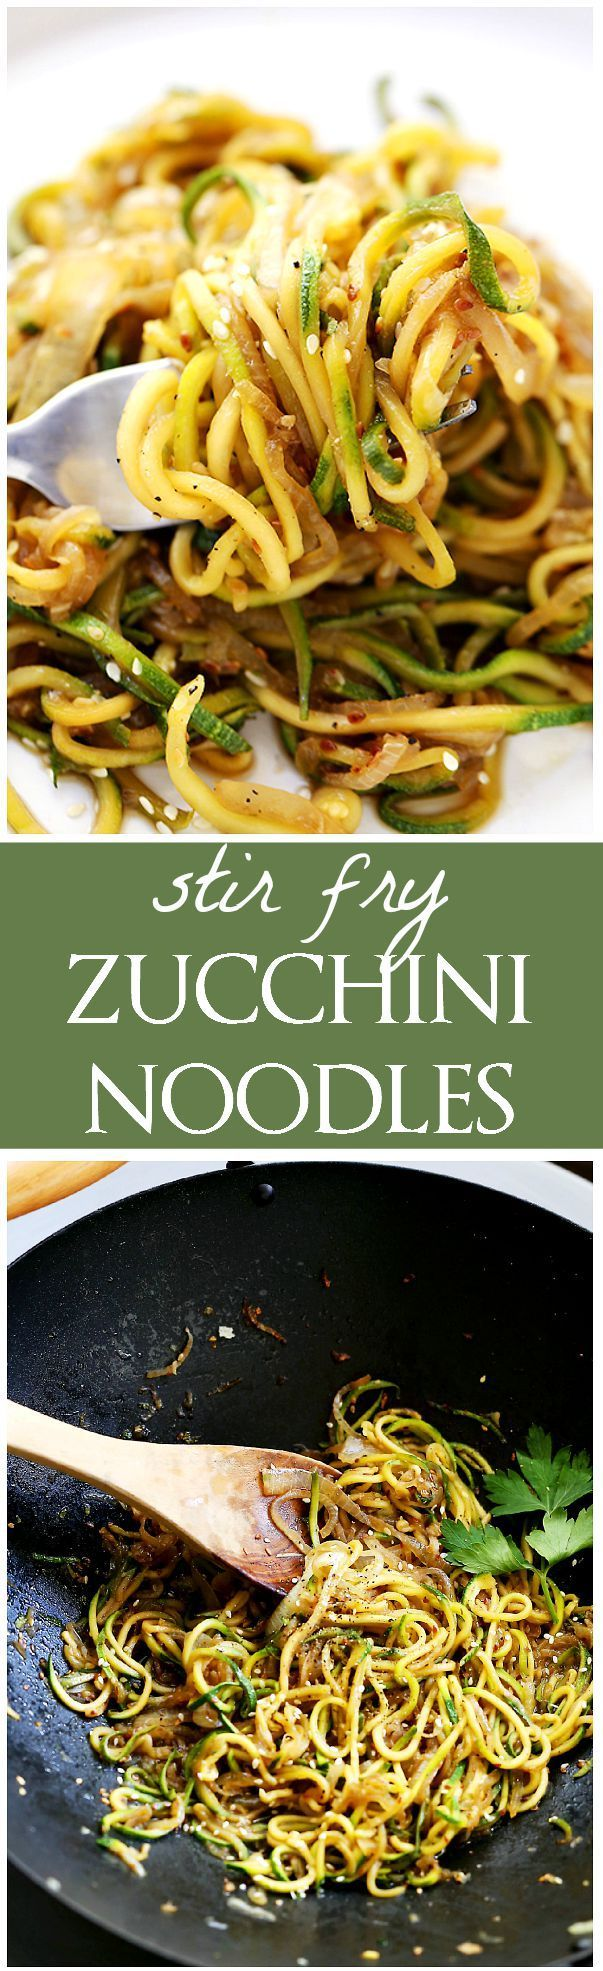 Delicious, low-carb, healthy Stir Fry made with spiralized zucchini and onions tossed with teriyaki sauce and toasted sesame seeds.